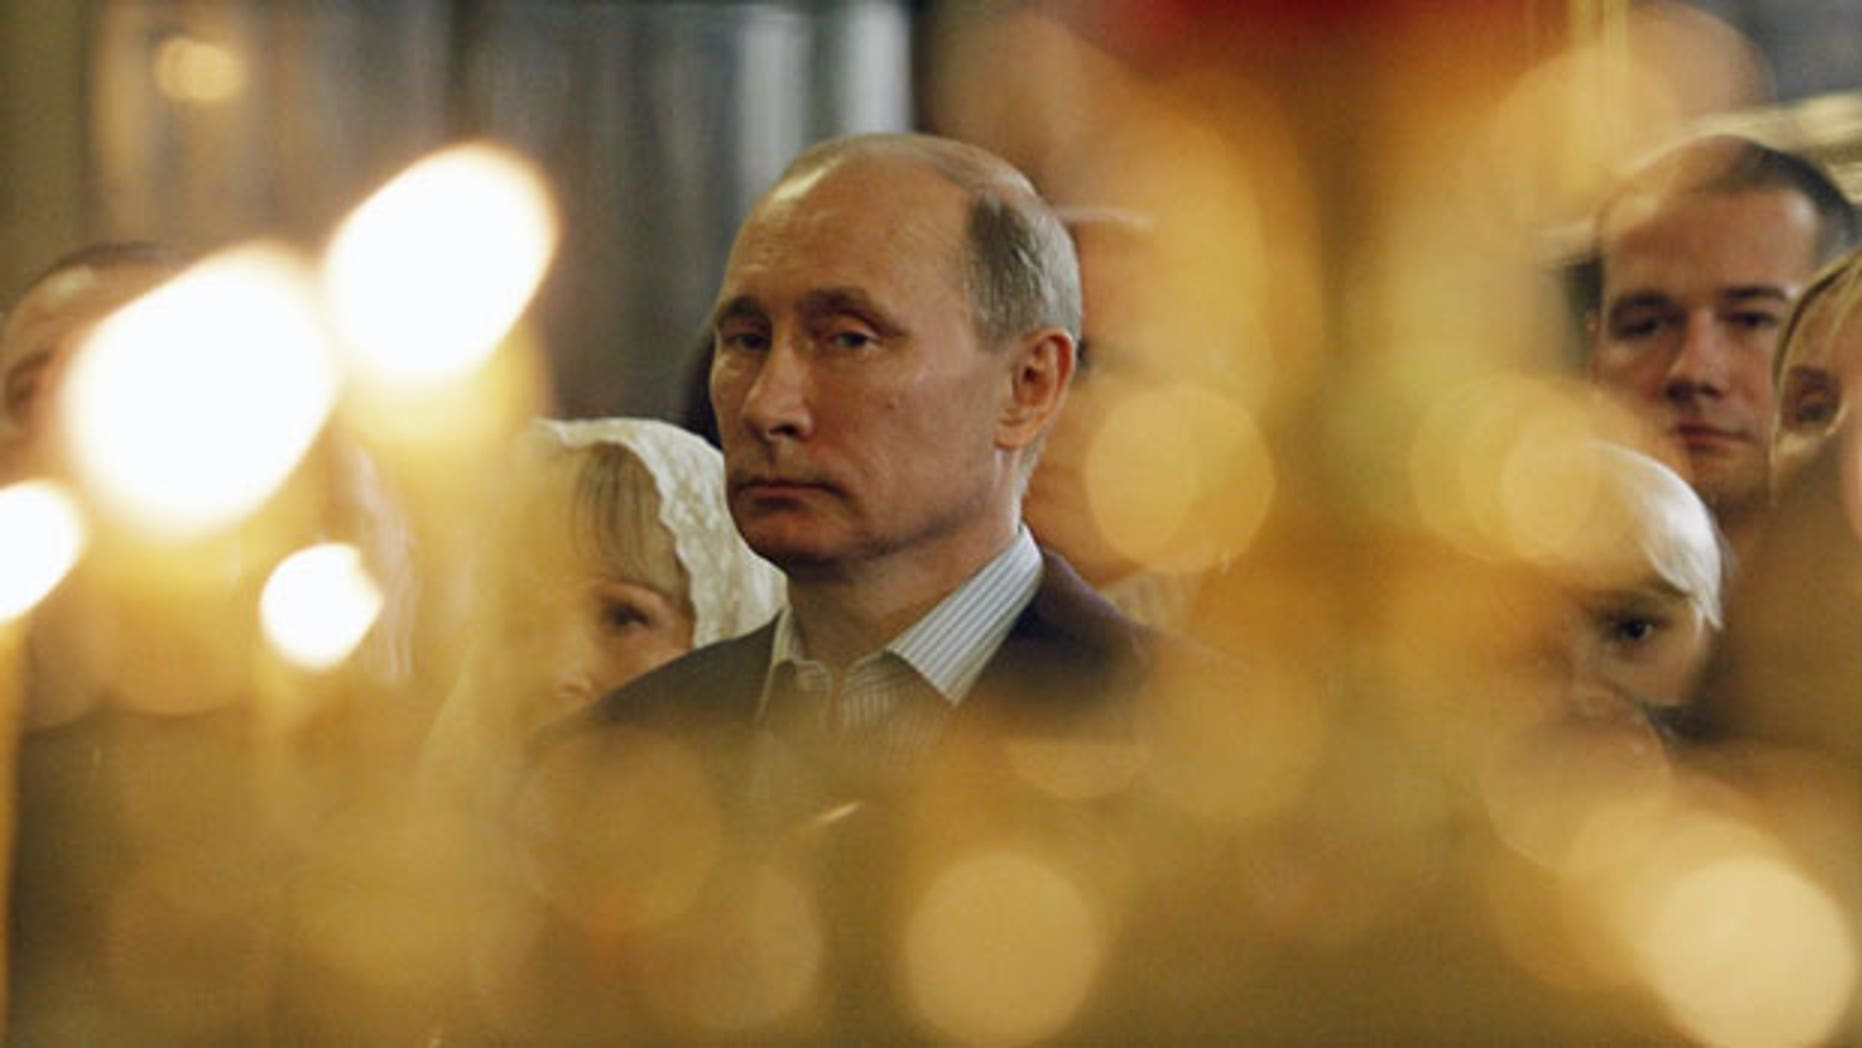 Vladimir Putin attends a Russian Orthodox Christmas service in 2012. (AP)